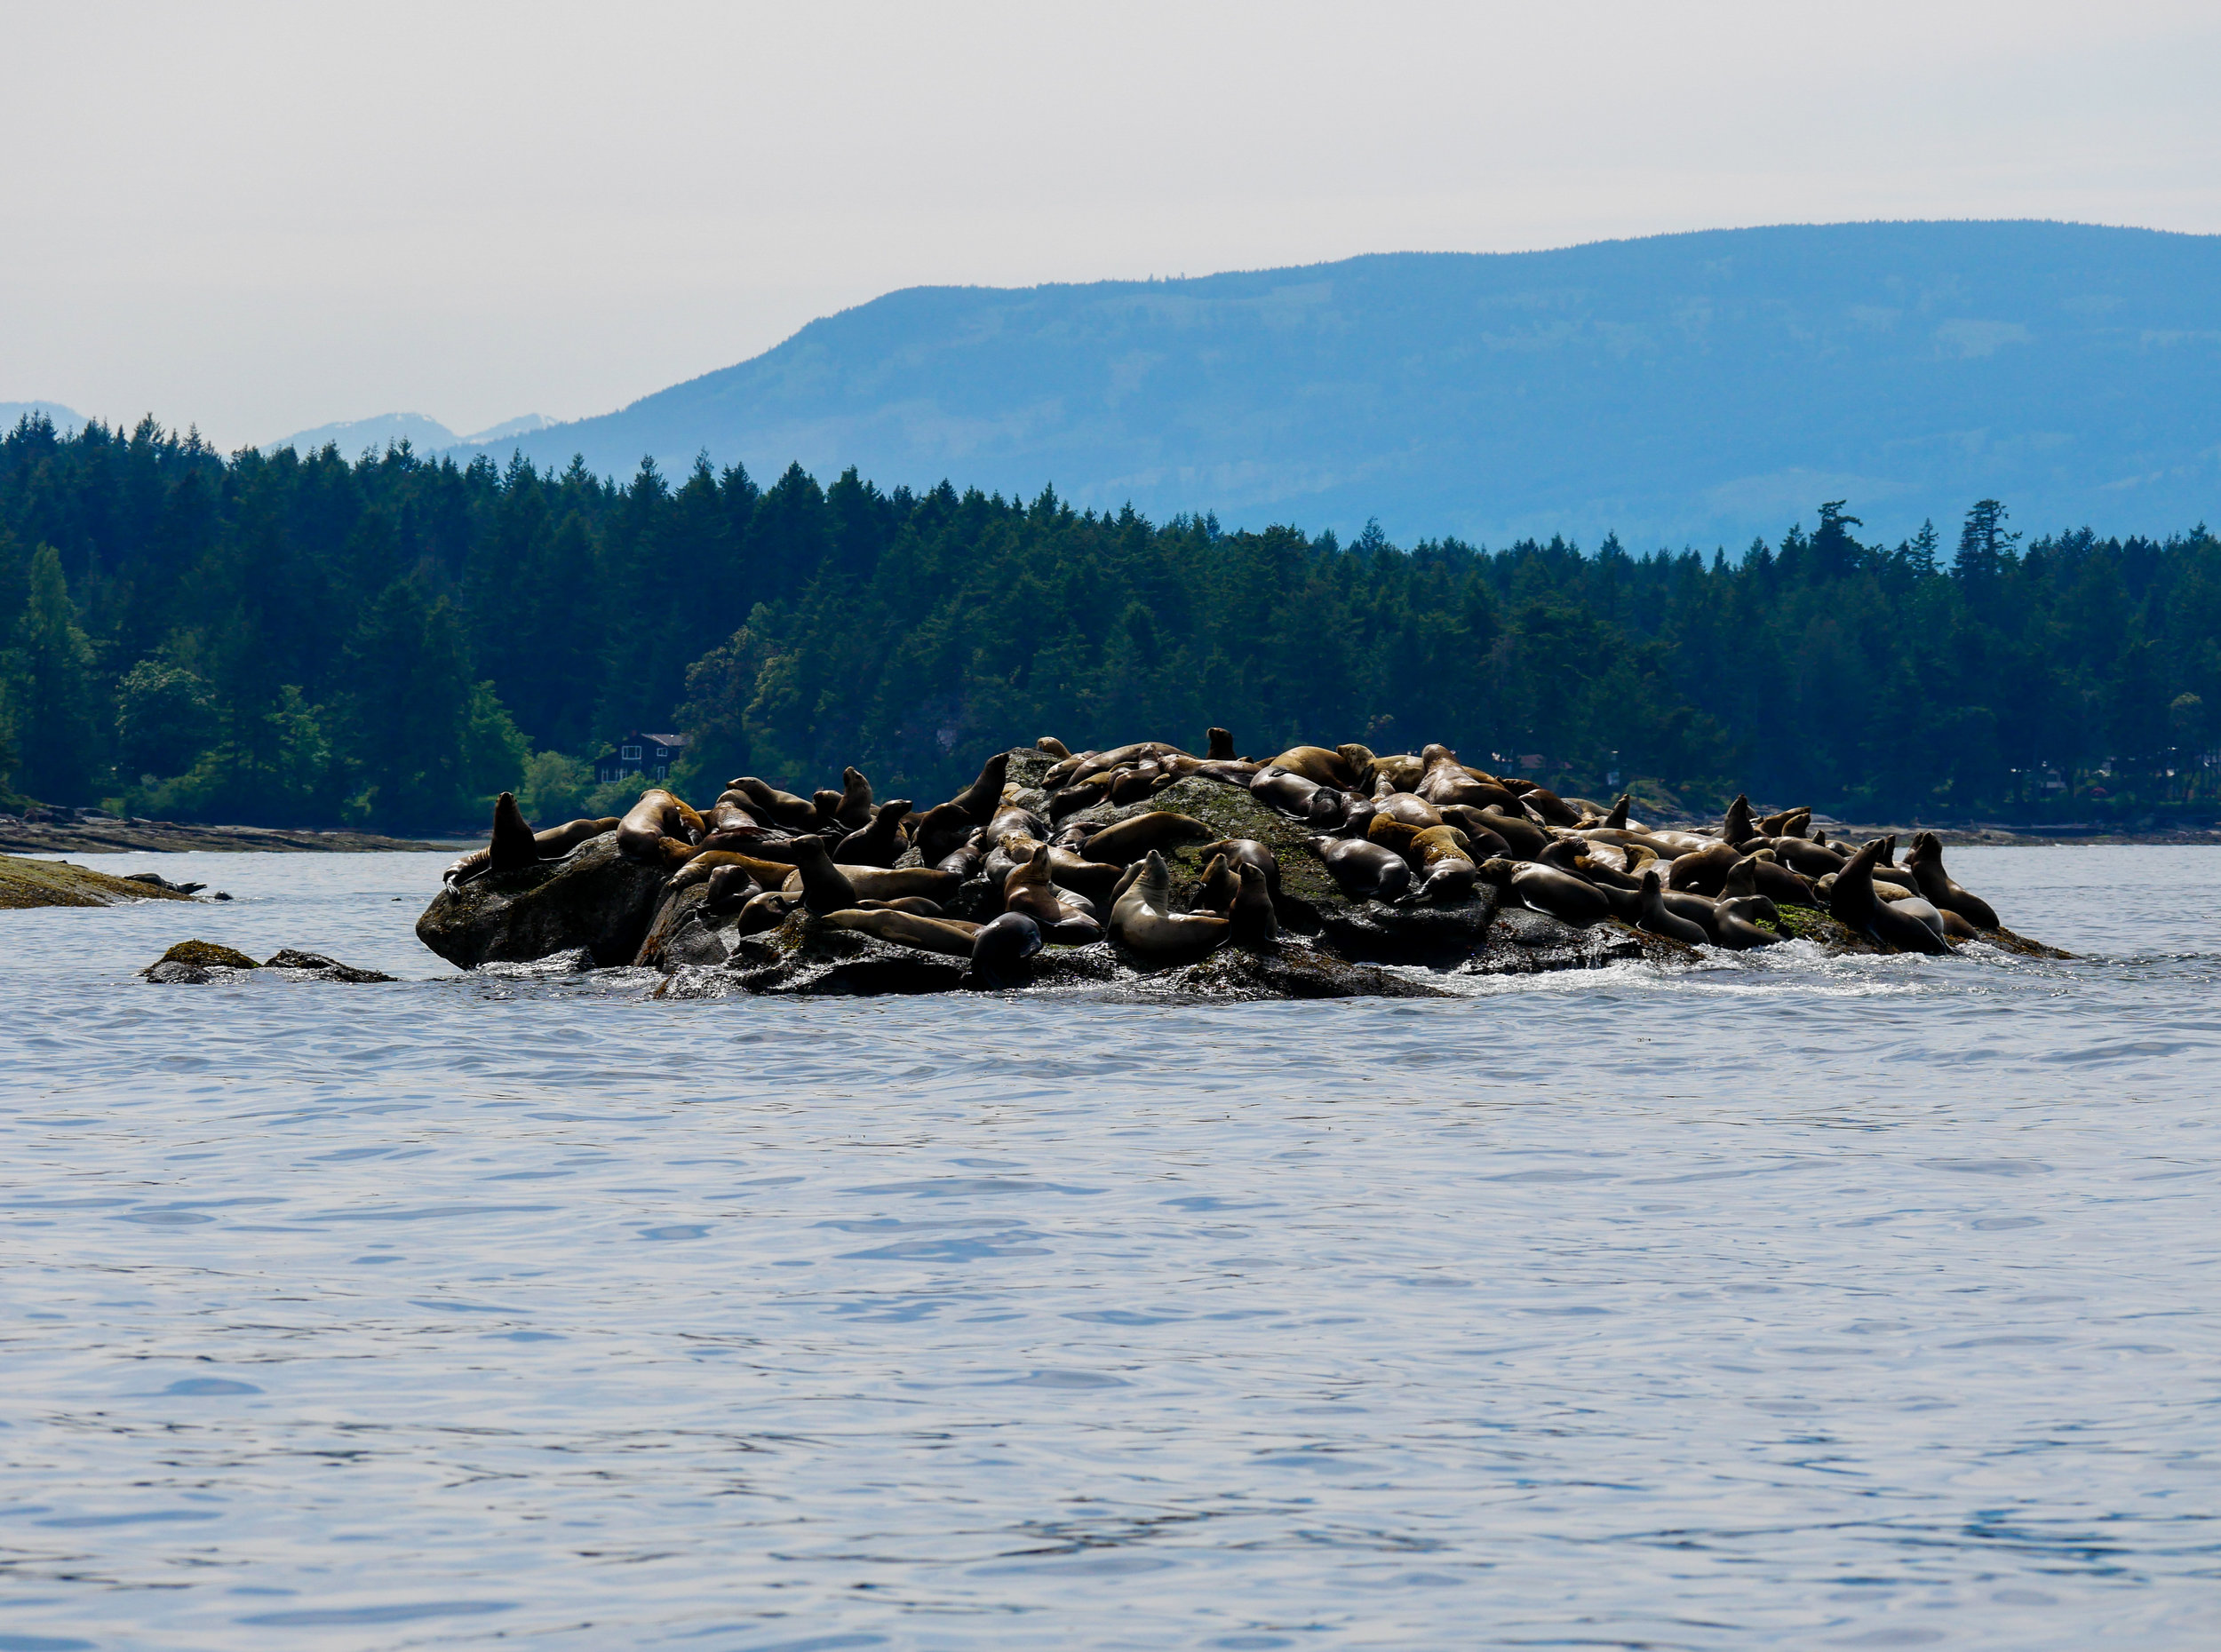 One of the many haul-outs of sea lions we saw today, how many can you count? Photo by Alanna Vivani.